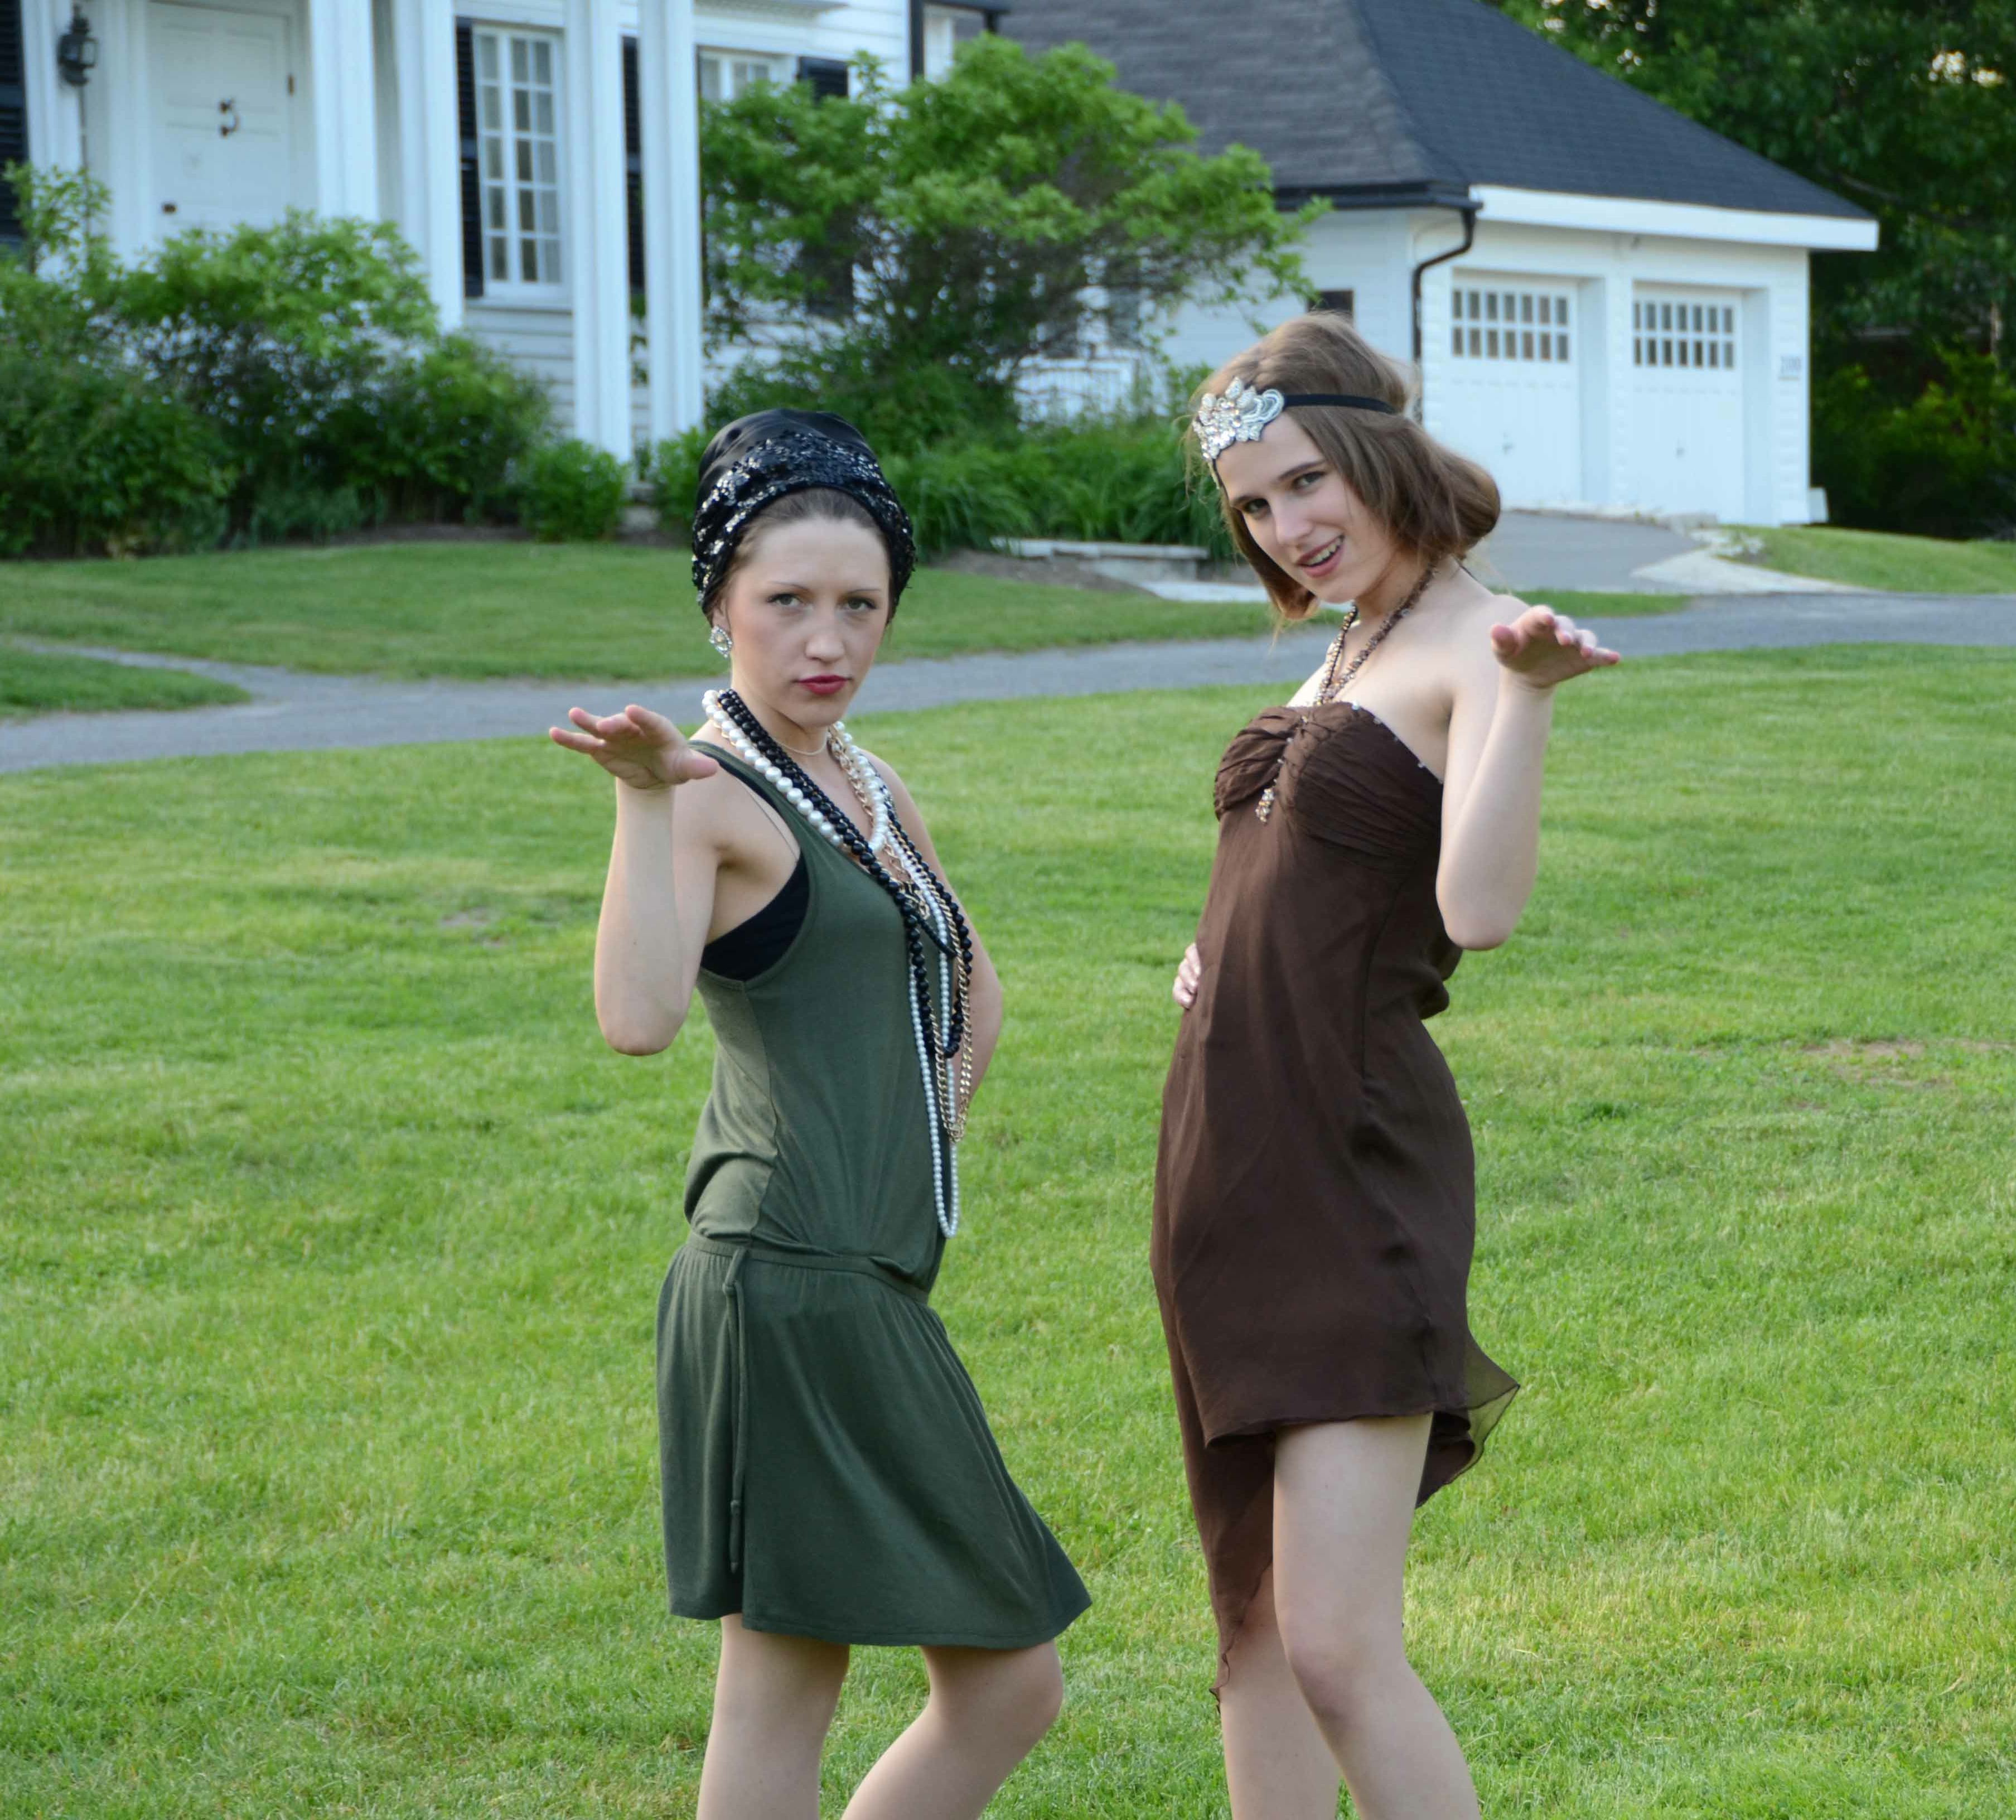 photo of two flappers